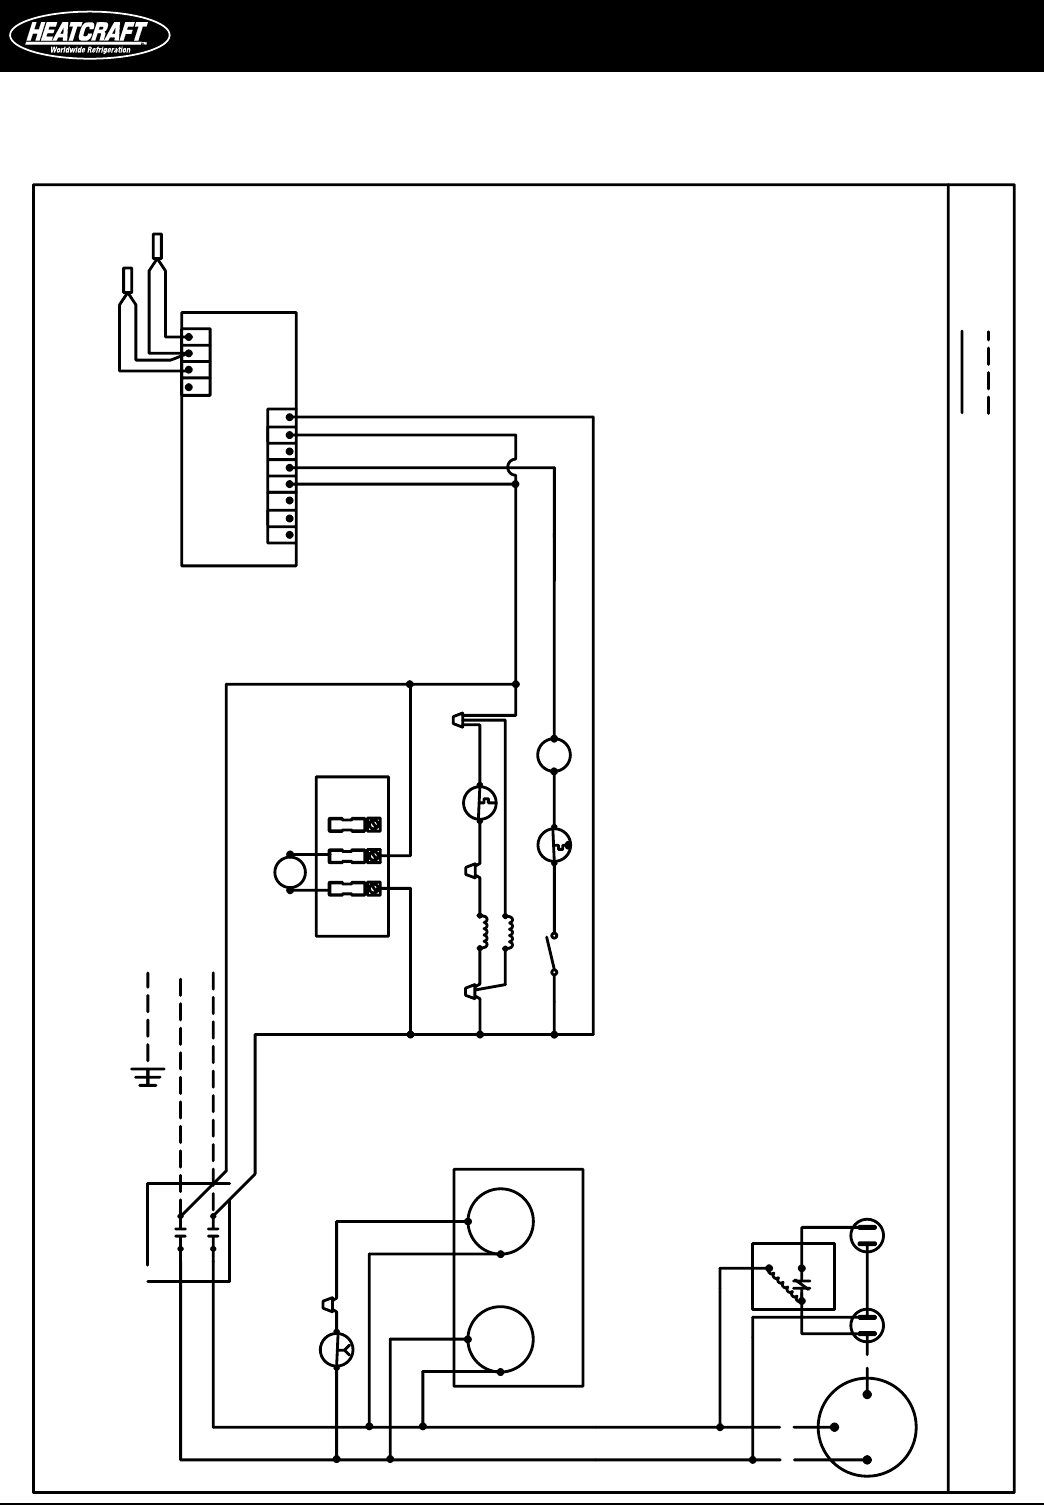 55587f91 c859 def4 0921 730c5709c050 bg10 bohn evaporator wiring diagram 230 460 motor wiring diagram \u2022 free heatcraft walk in cooler wiring diagram at eliteediting.co